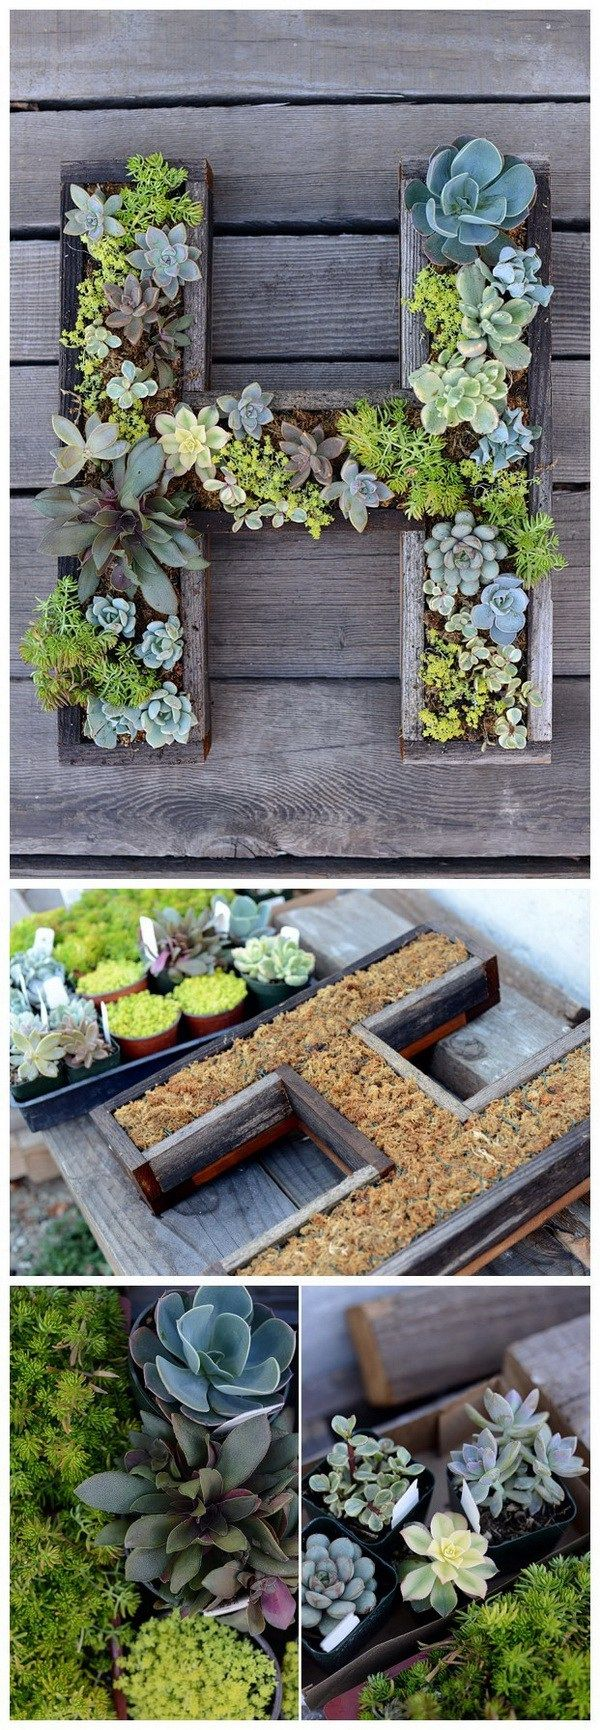 Best 25+ Planters ideas on Pinterest | Planter ideas, Vintage ...